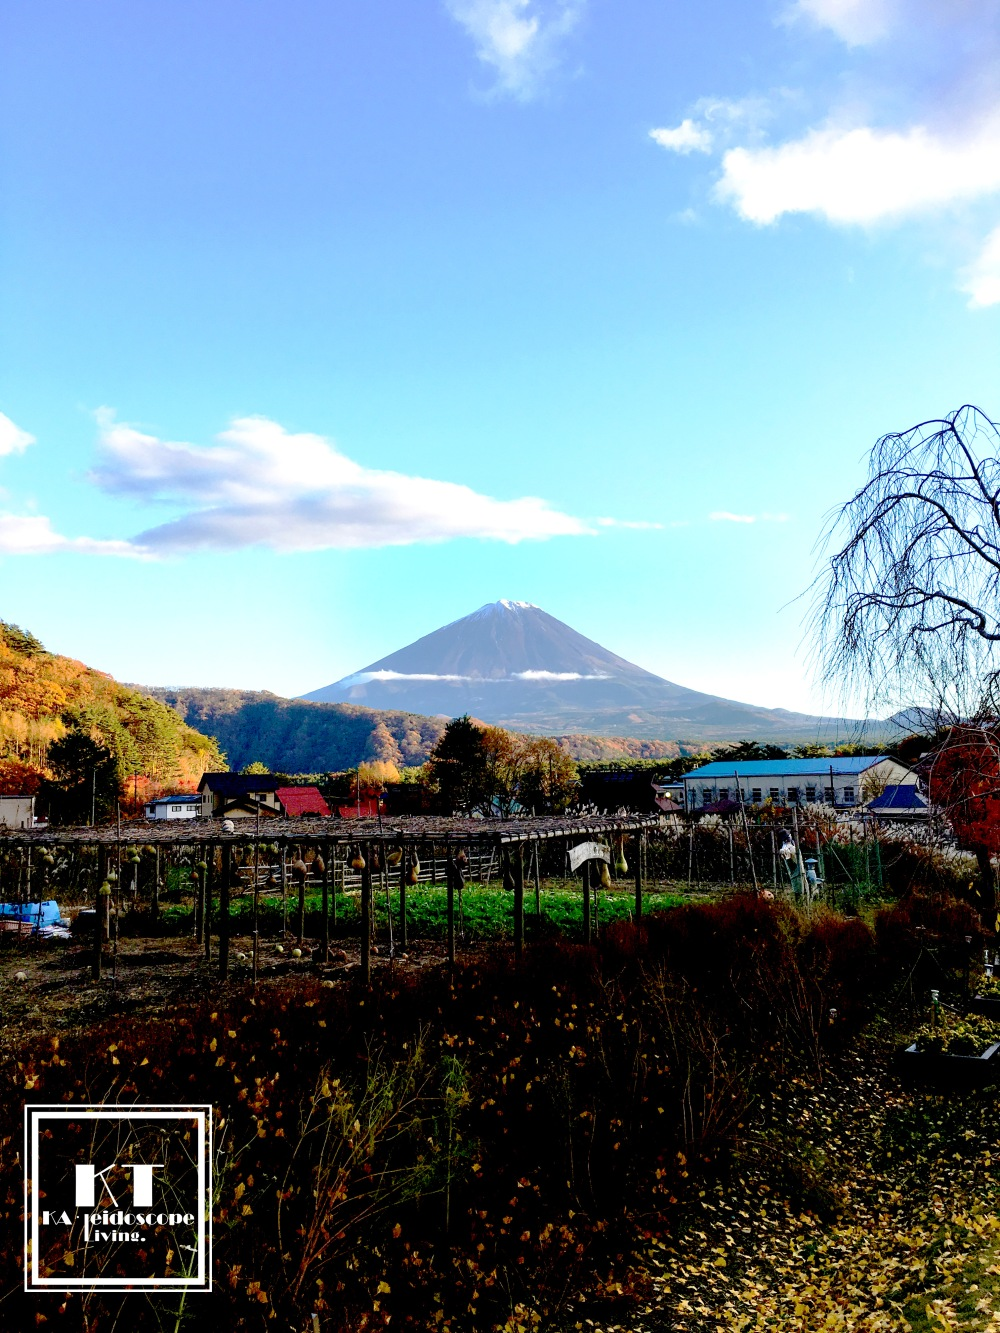 Travel Must Visit Mount Fuji Iyashi no Sato Nenba Japan 01